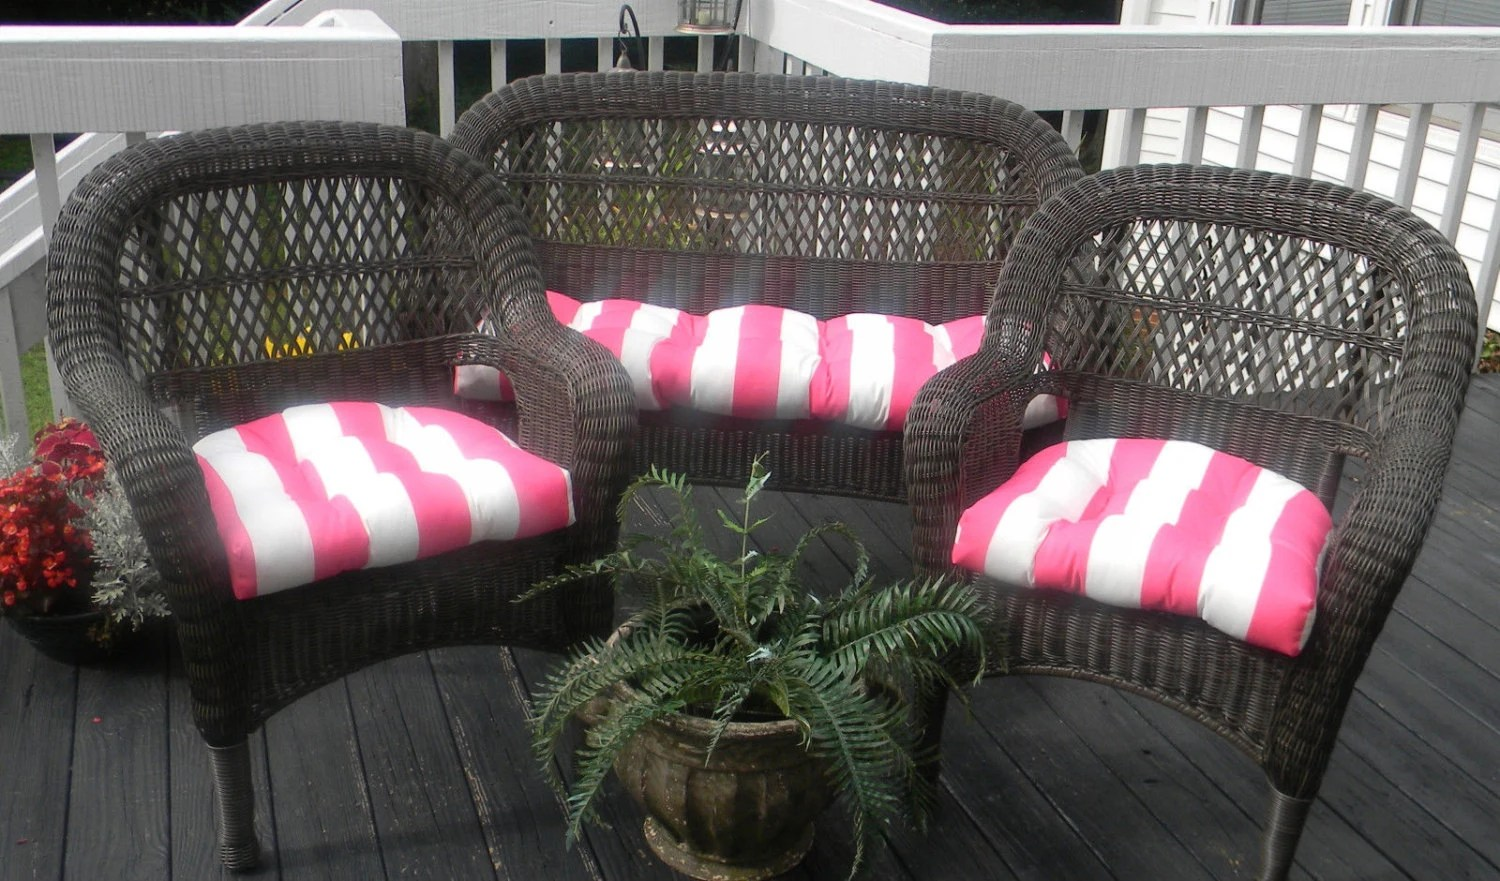 pink salon chairs toddler high chair booster wicker cushion 3 pc set preppy and white stripe indoor